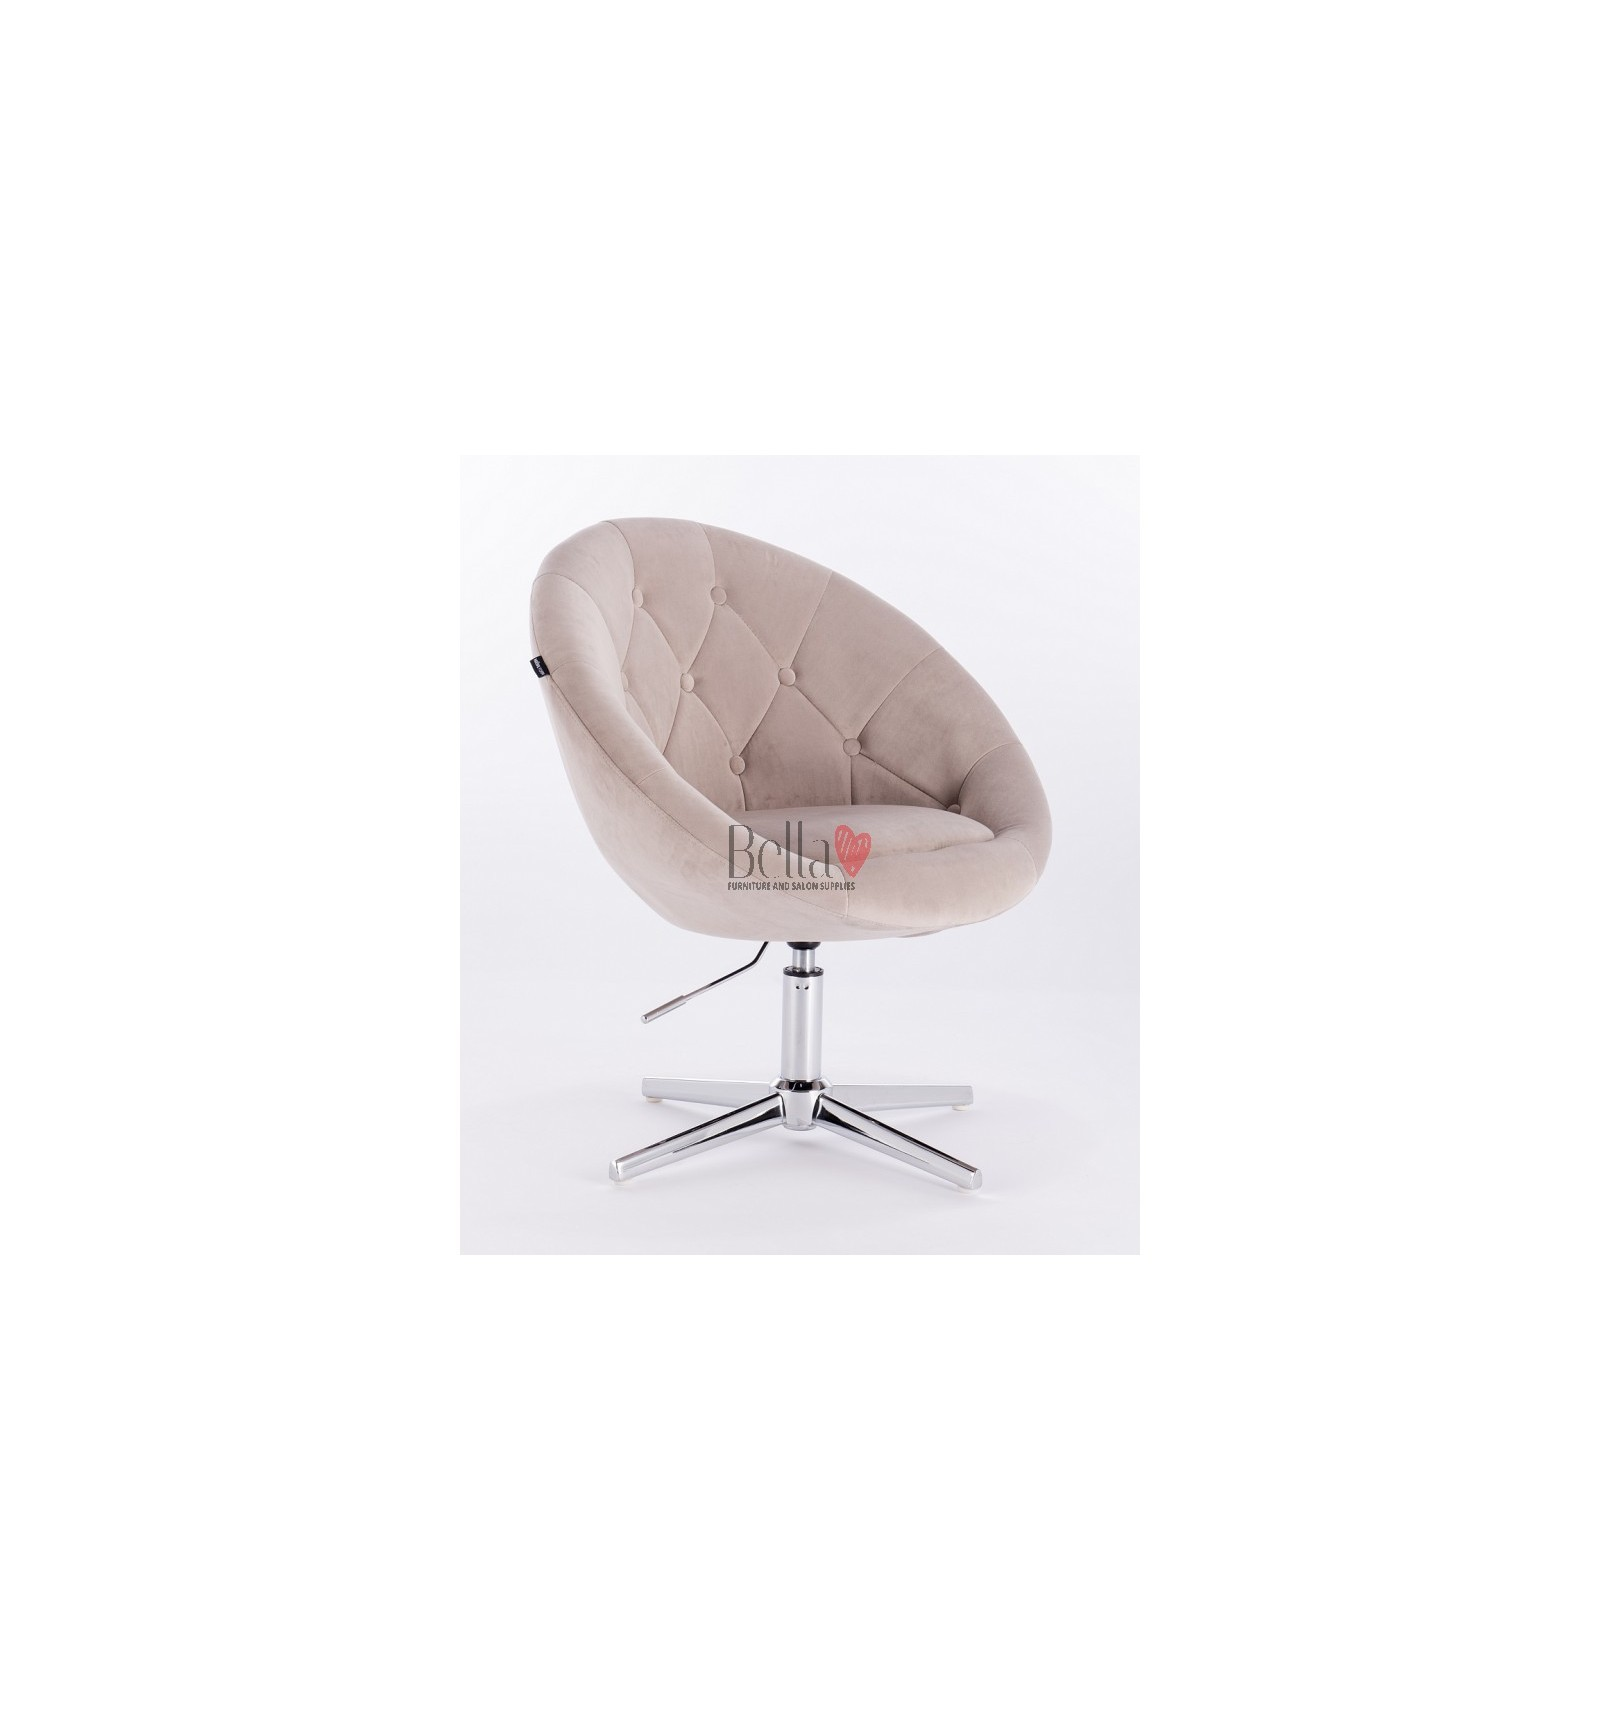 Swivel chairs with gas lift for beauty salons and nail salons